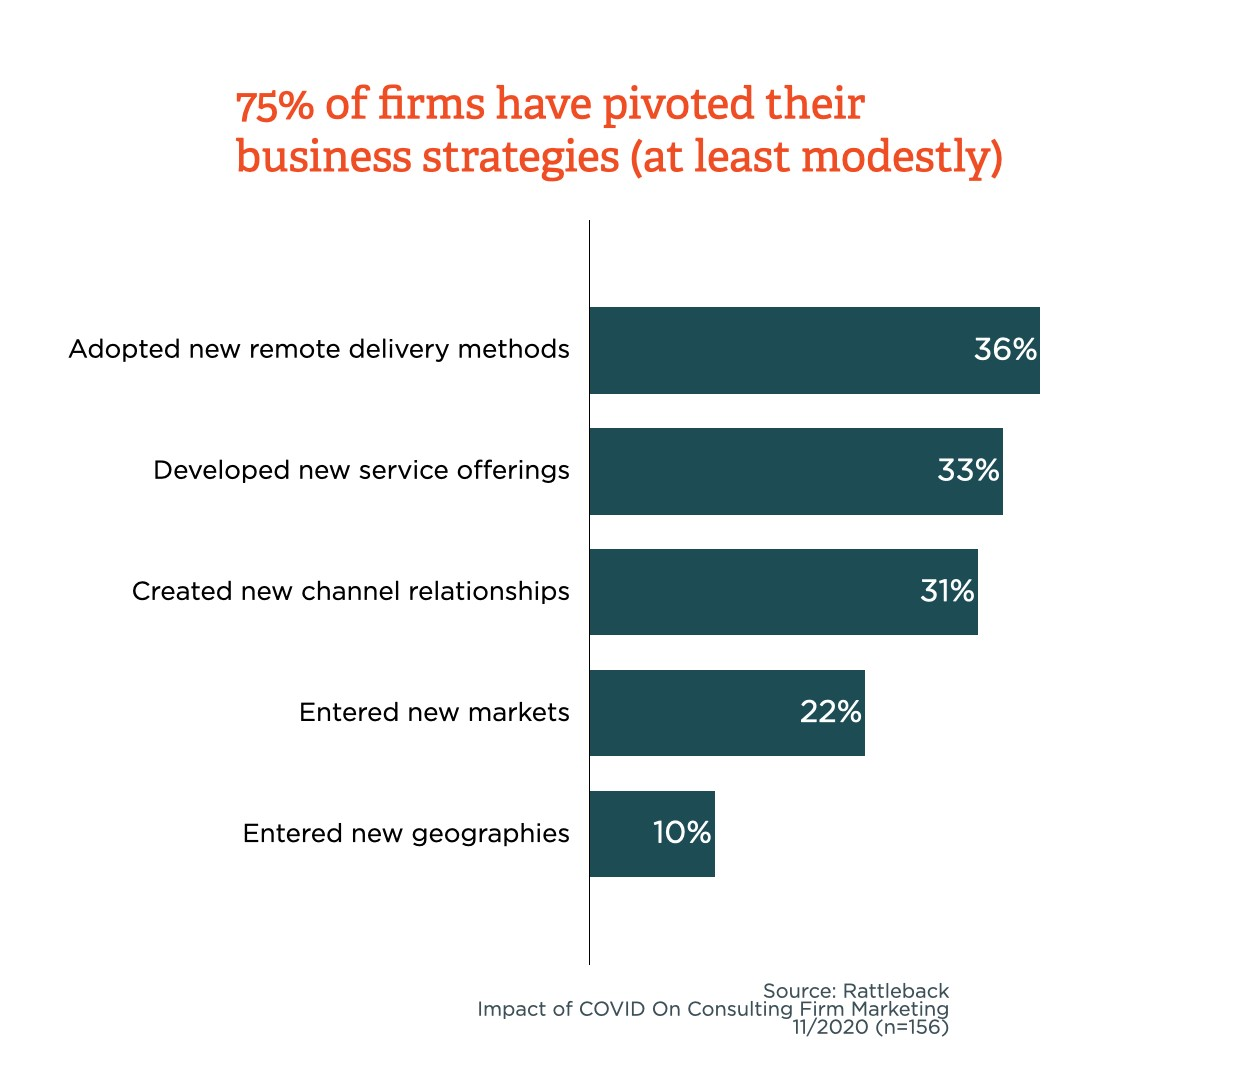 Firms that have pivoted business strategies moderately